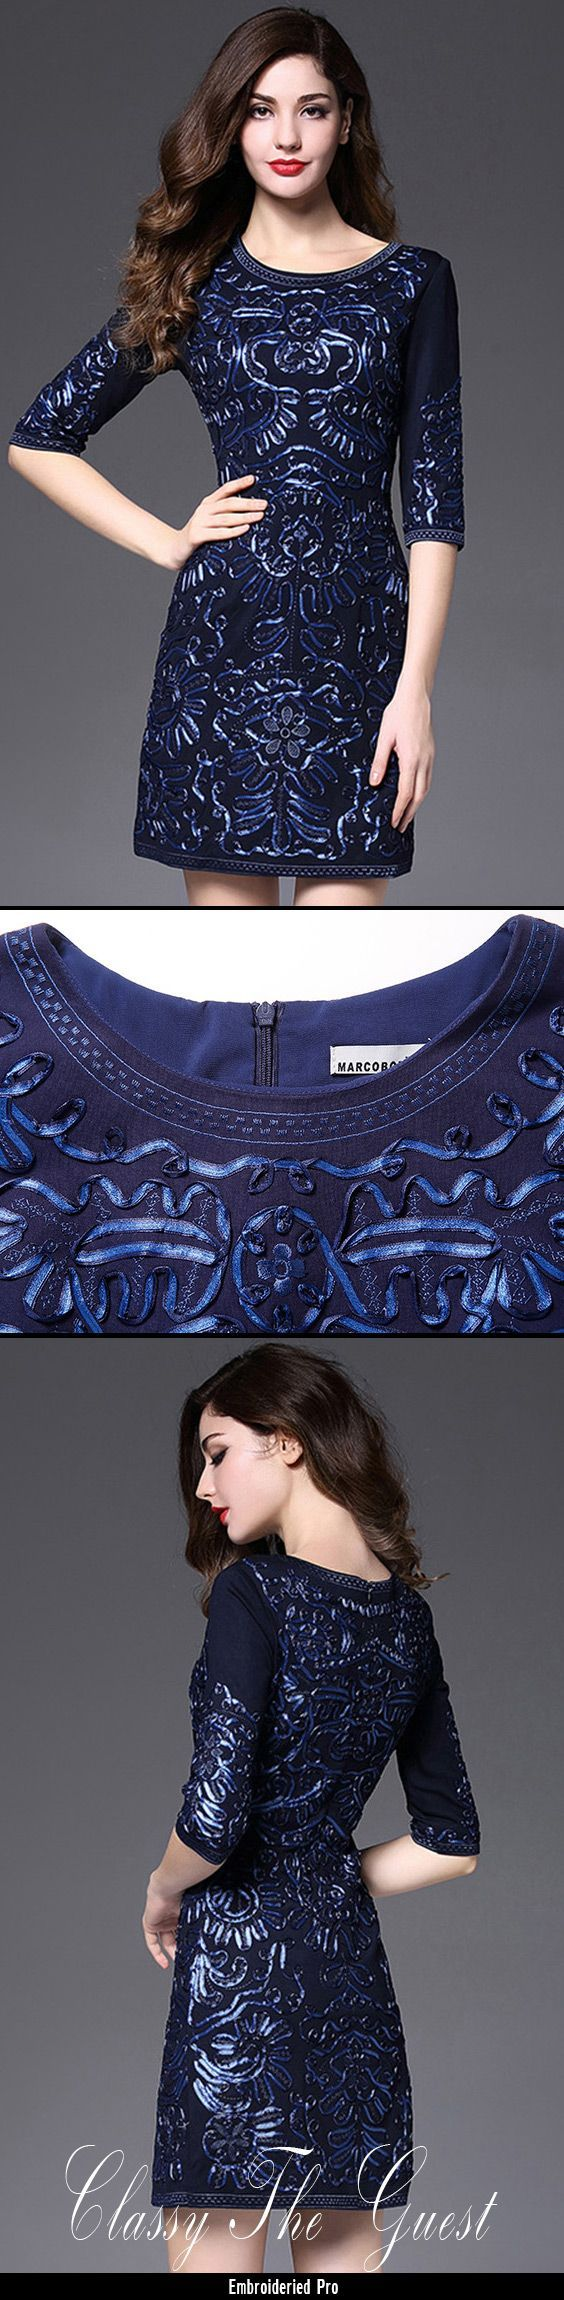 dfa9e2cfdd9 Wedding Guest Dresses Short Fitted Wedding Guest Dress Navy Blue With Sleeves  Luxury Embroidery  ZL8043